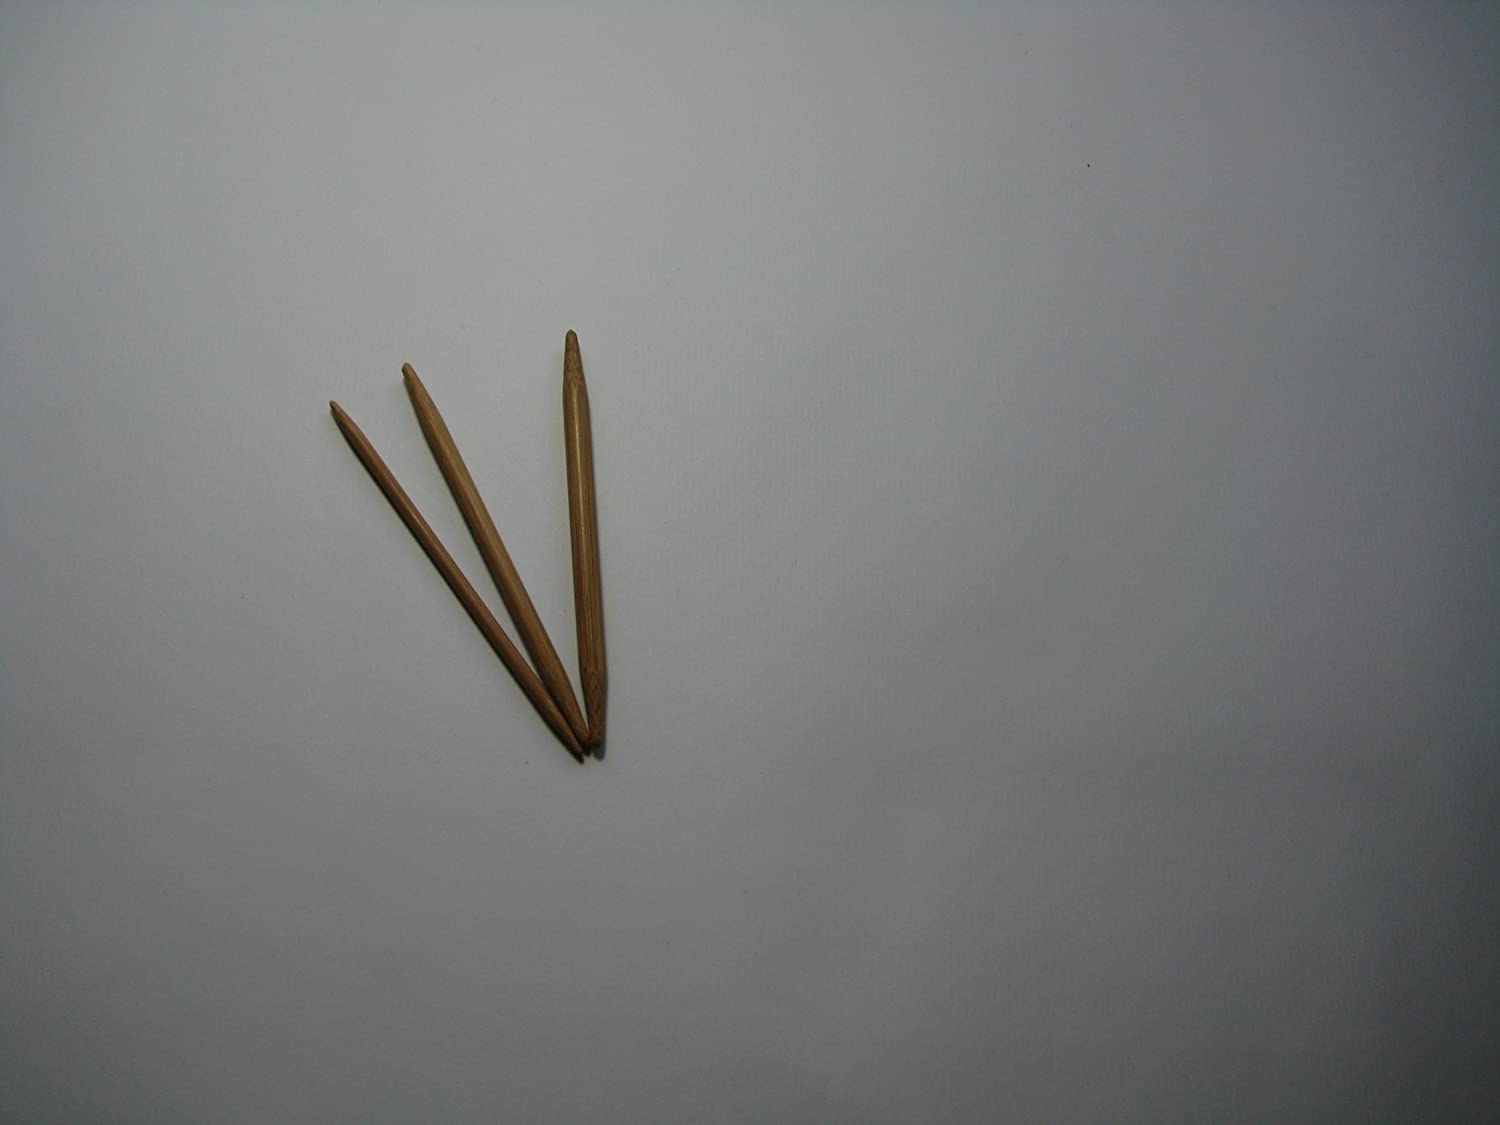 Set of 3 Cable stitch Needles Bamboo BrilliantKnitting (BR brand)